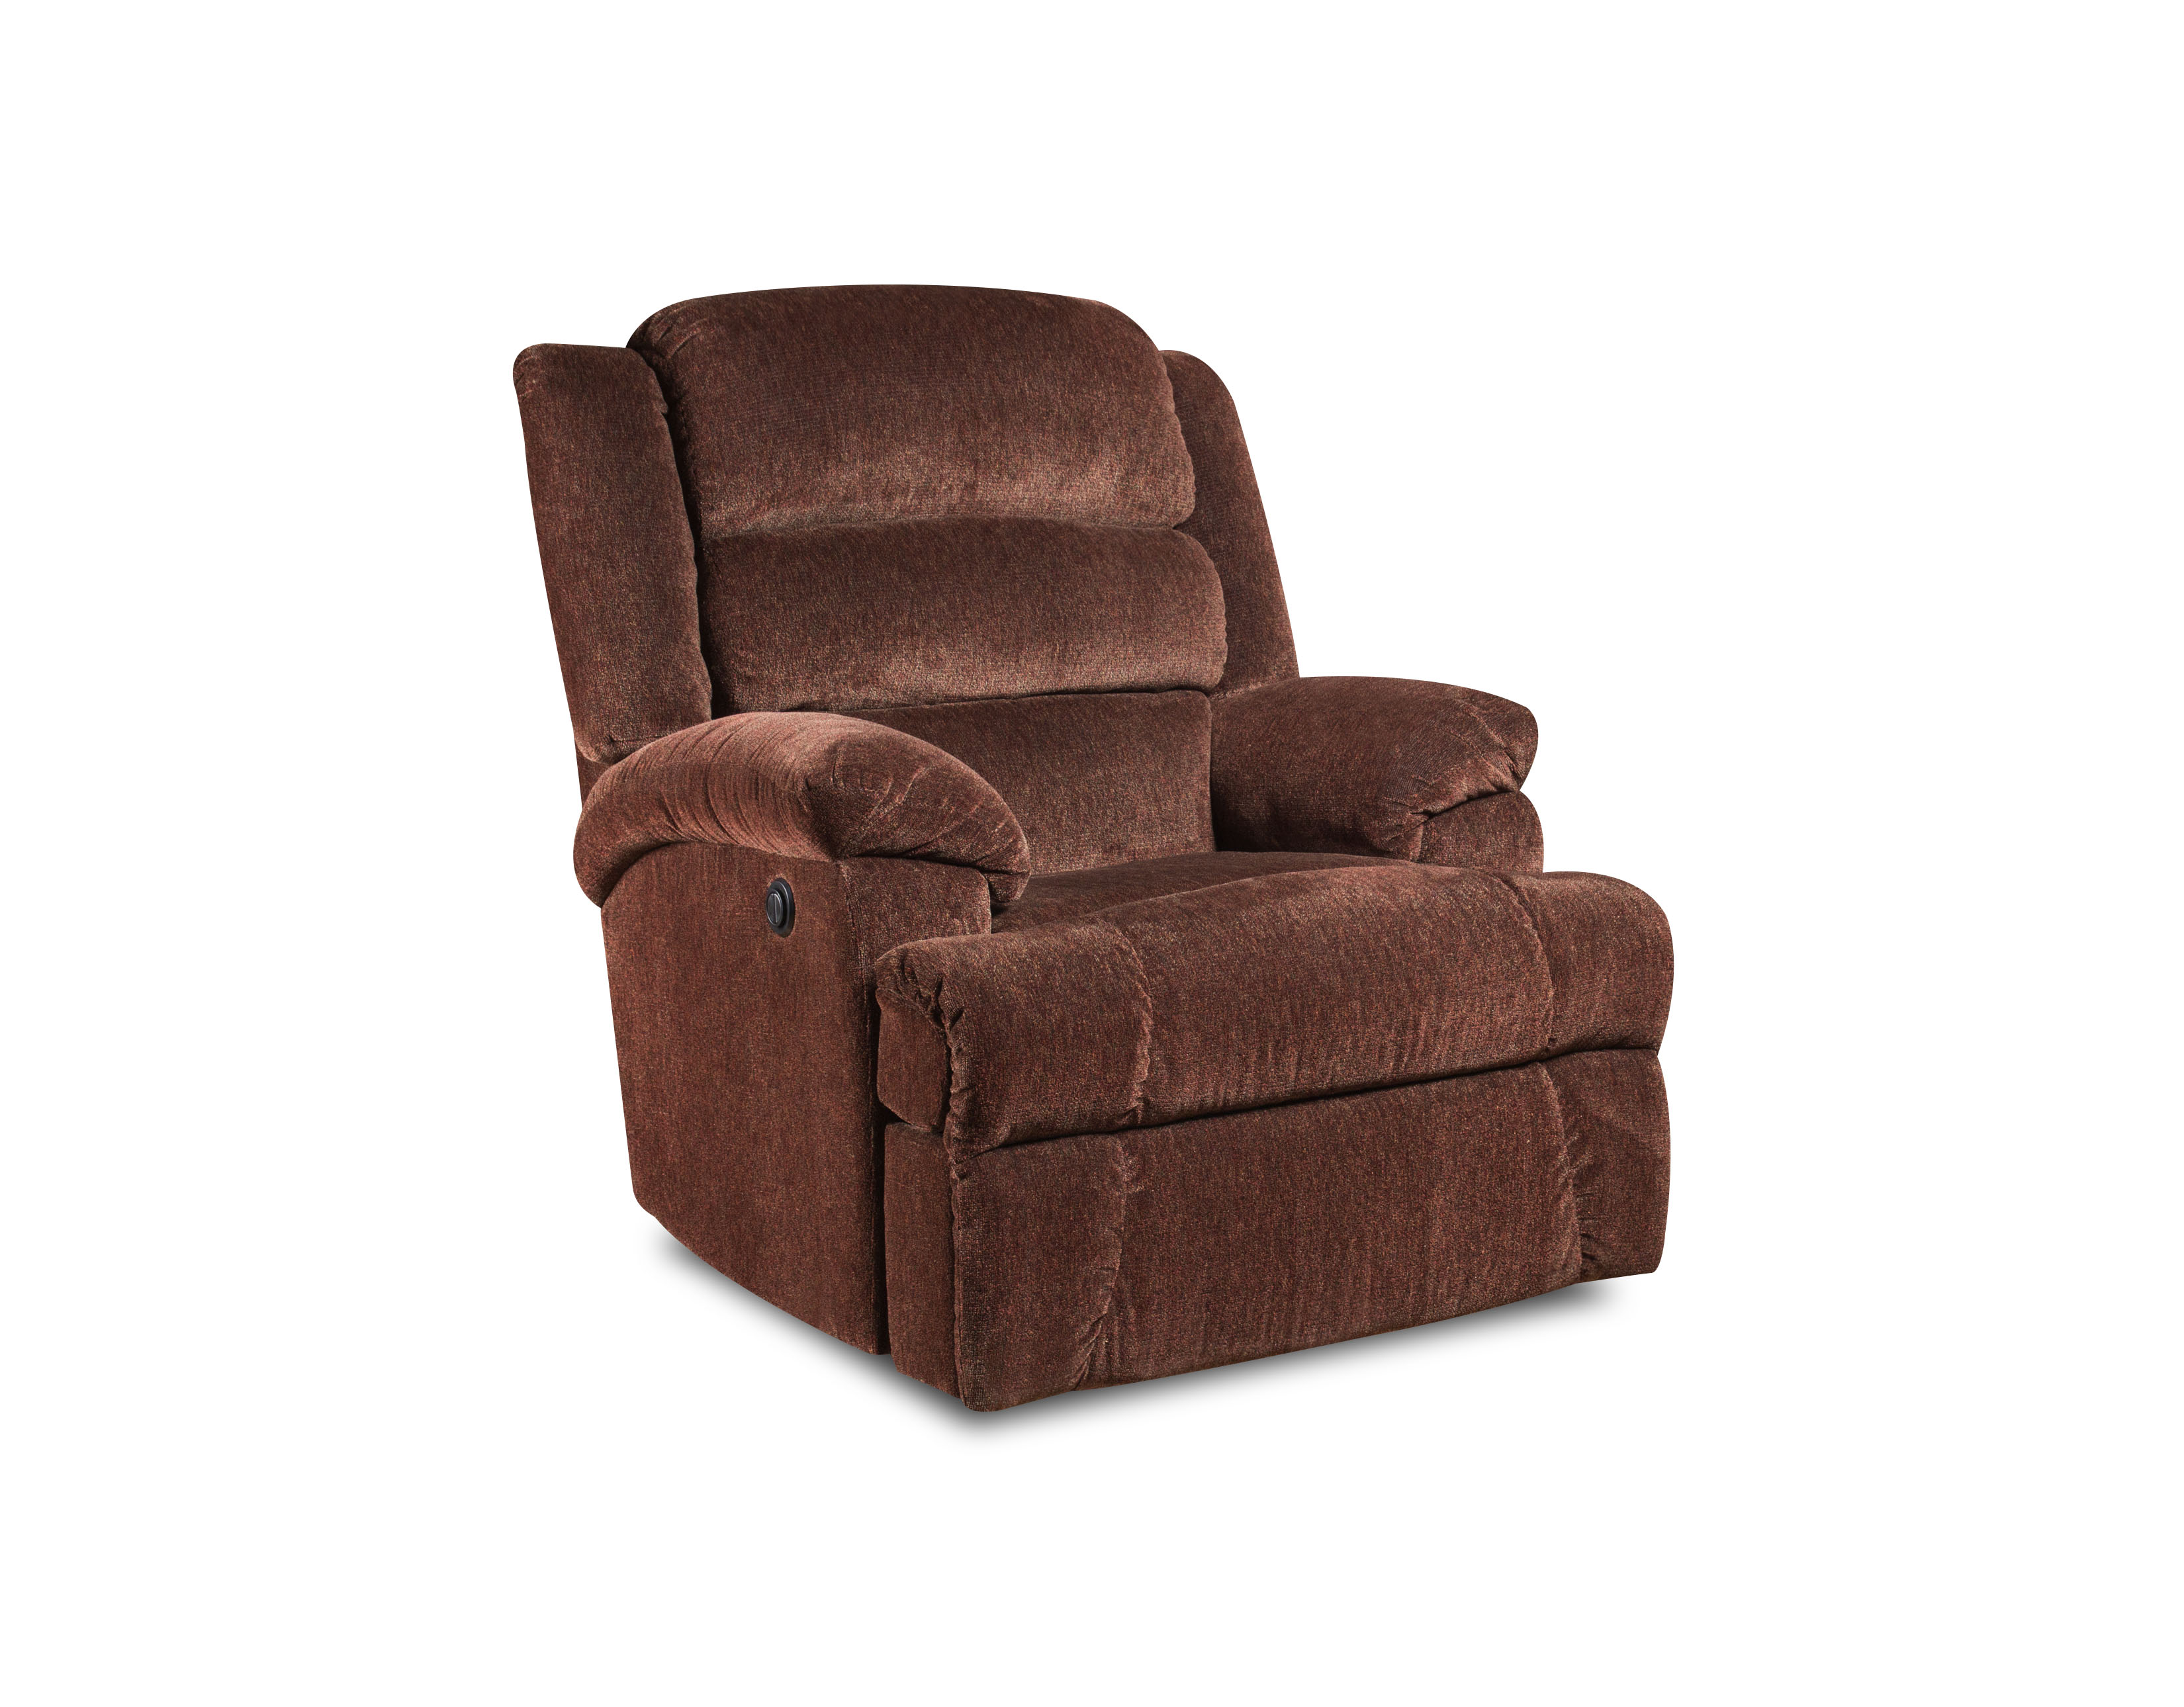 Replacement Parts for Recliner Chairs | Stratolounger | Recliner Massage  sc 1 st  Marc Charles Steakhouse & Furniture u0026 Rug: Recliner Massage | Stratolounger | Massage And ... islam-shia.org